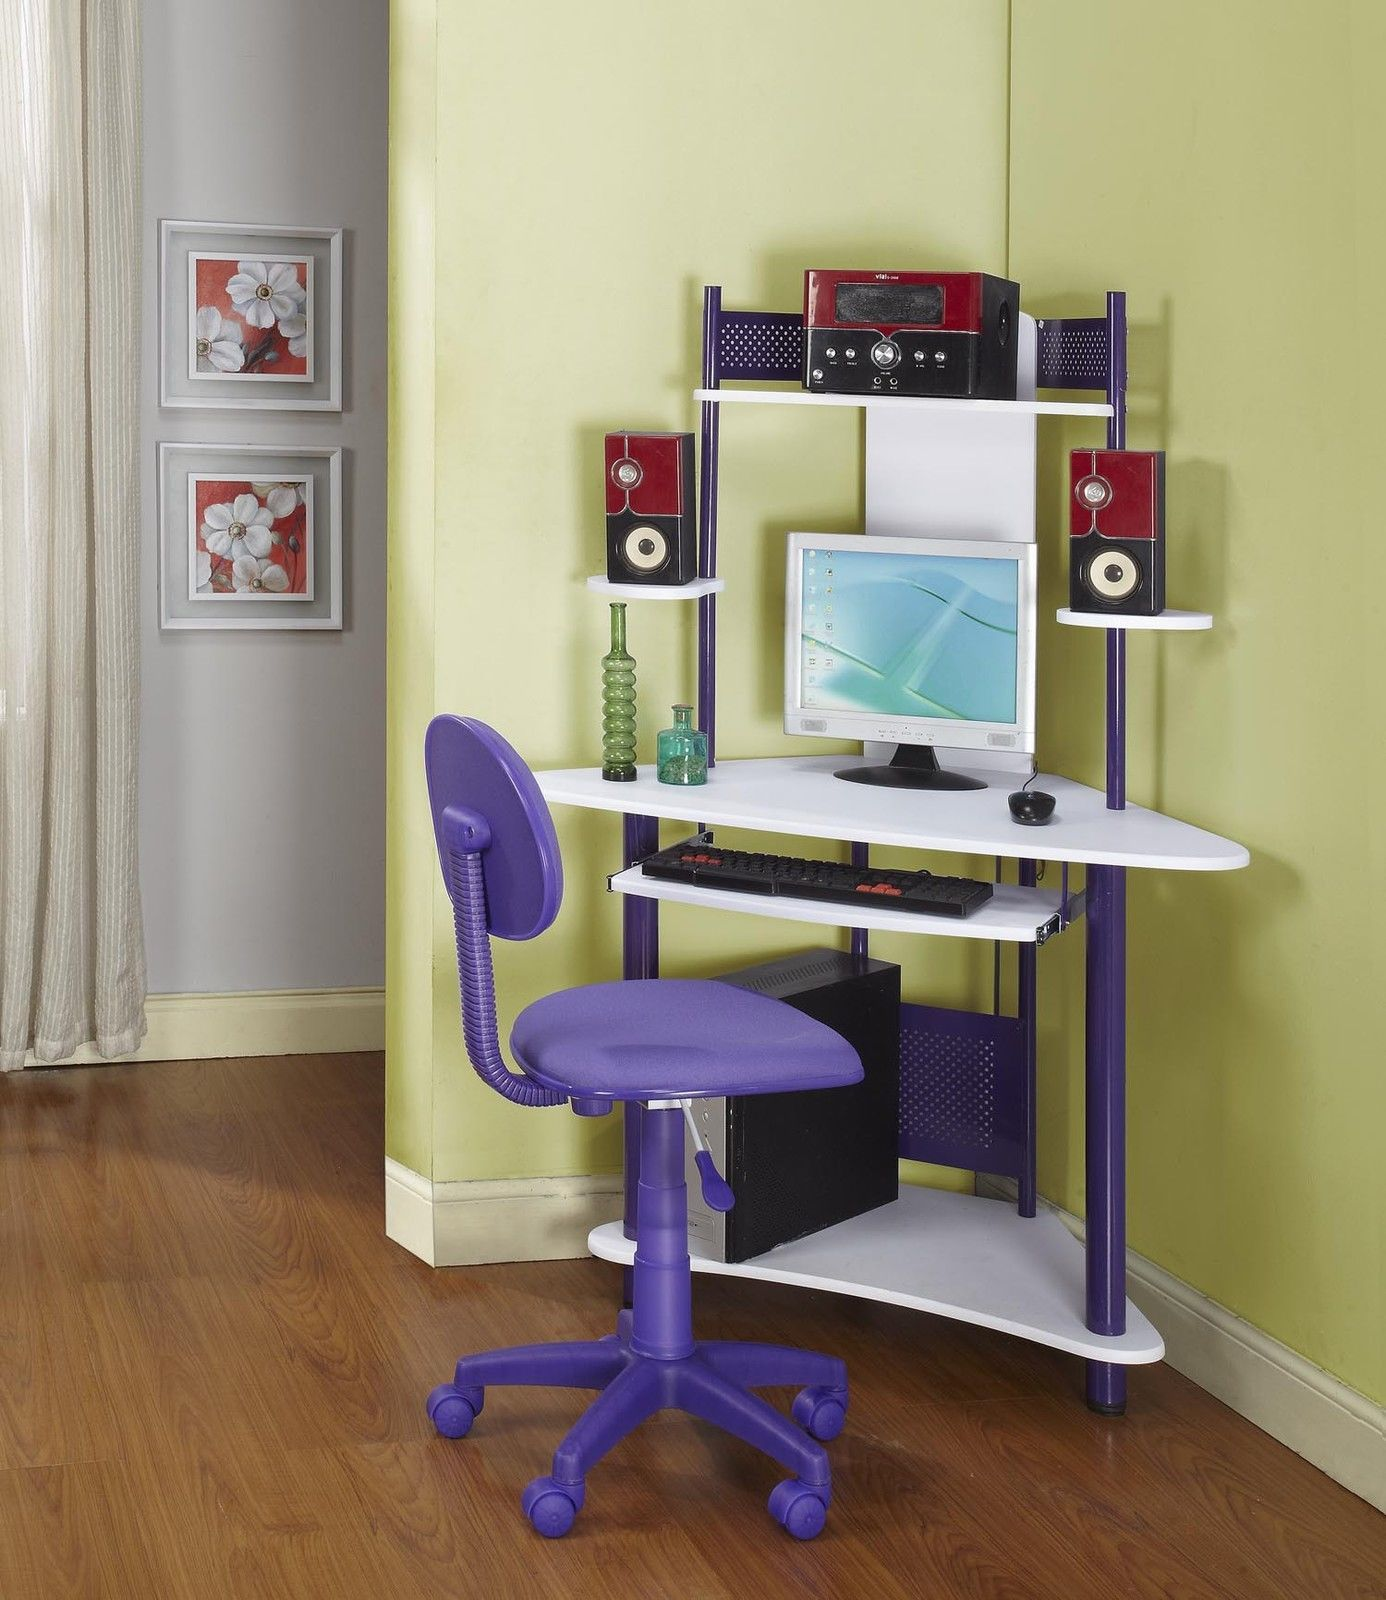 Small Computer Desk And Chair   Space Saving Desk Ideas Check More At Http:/